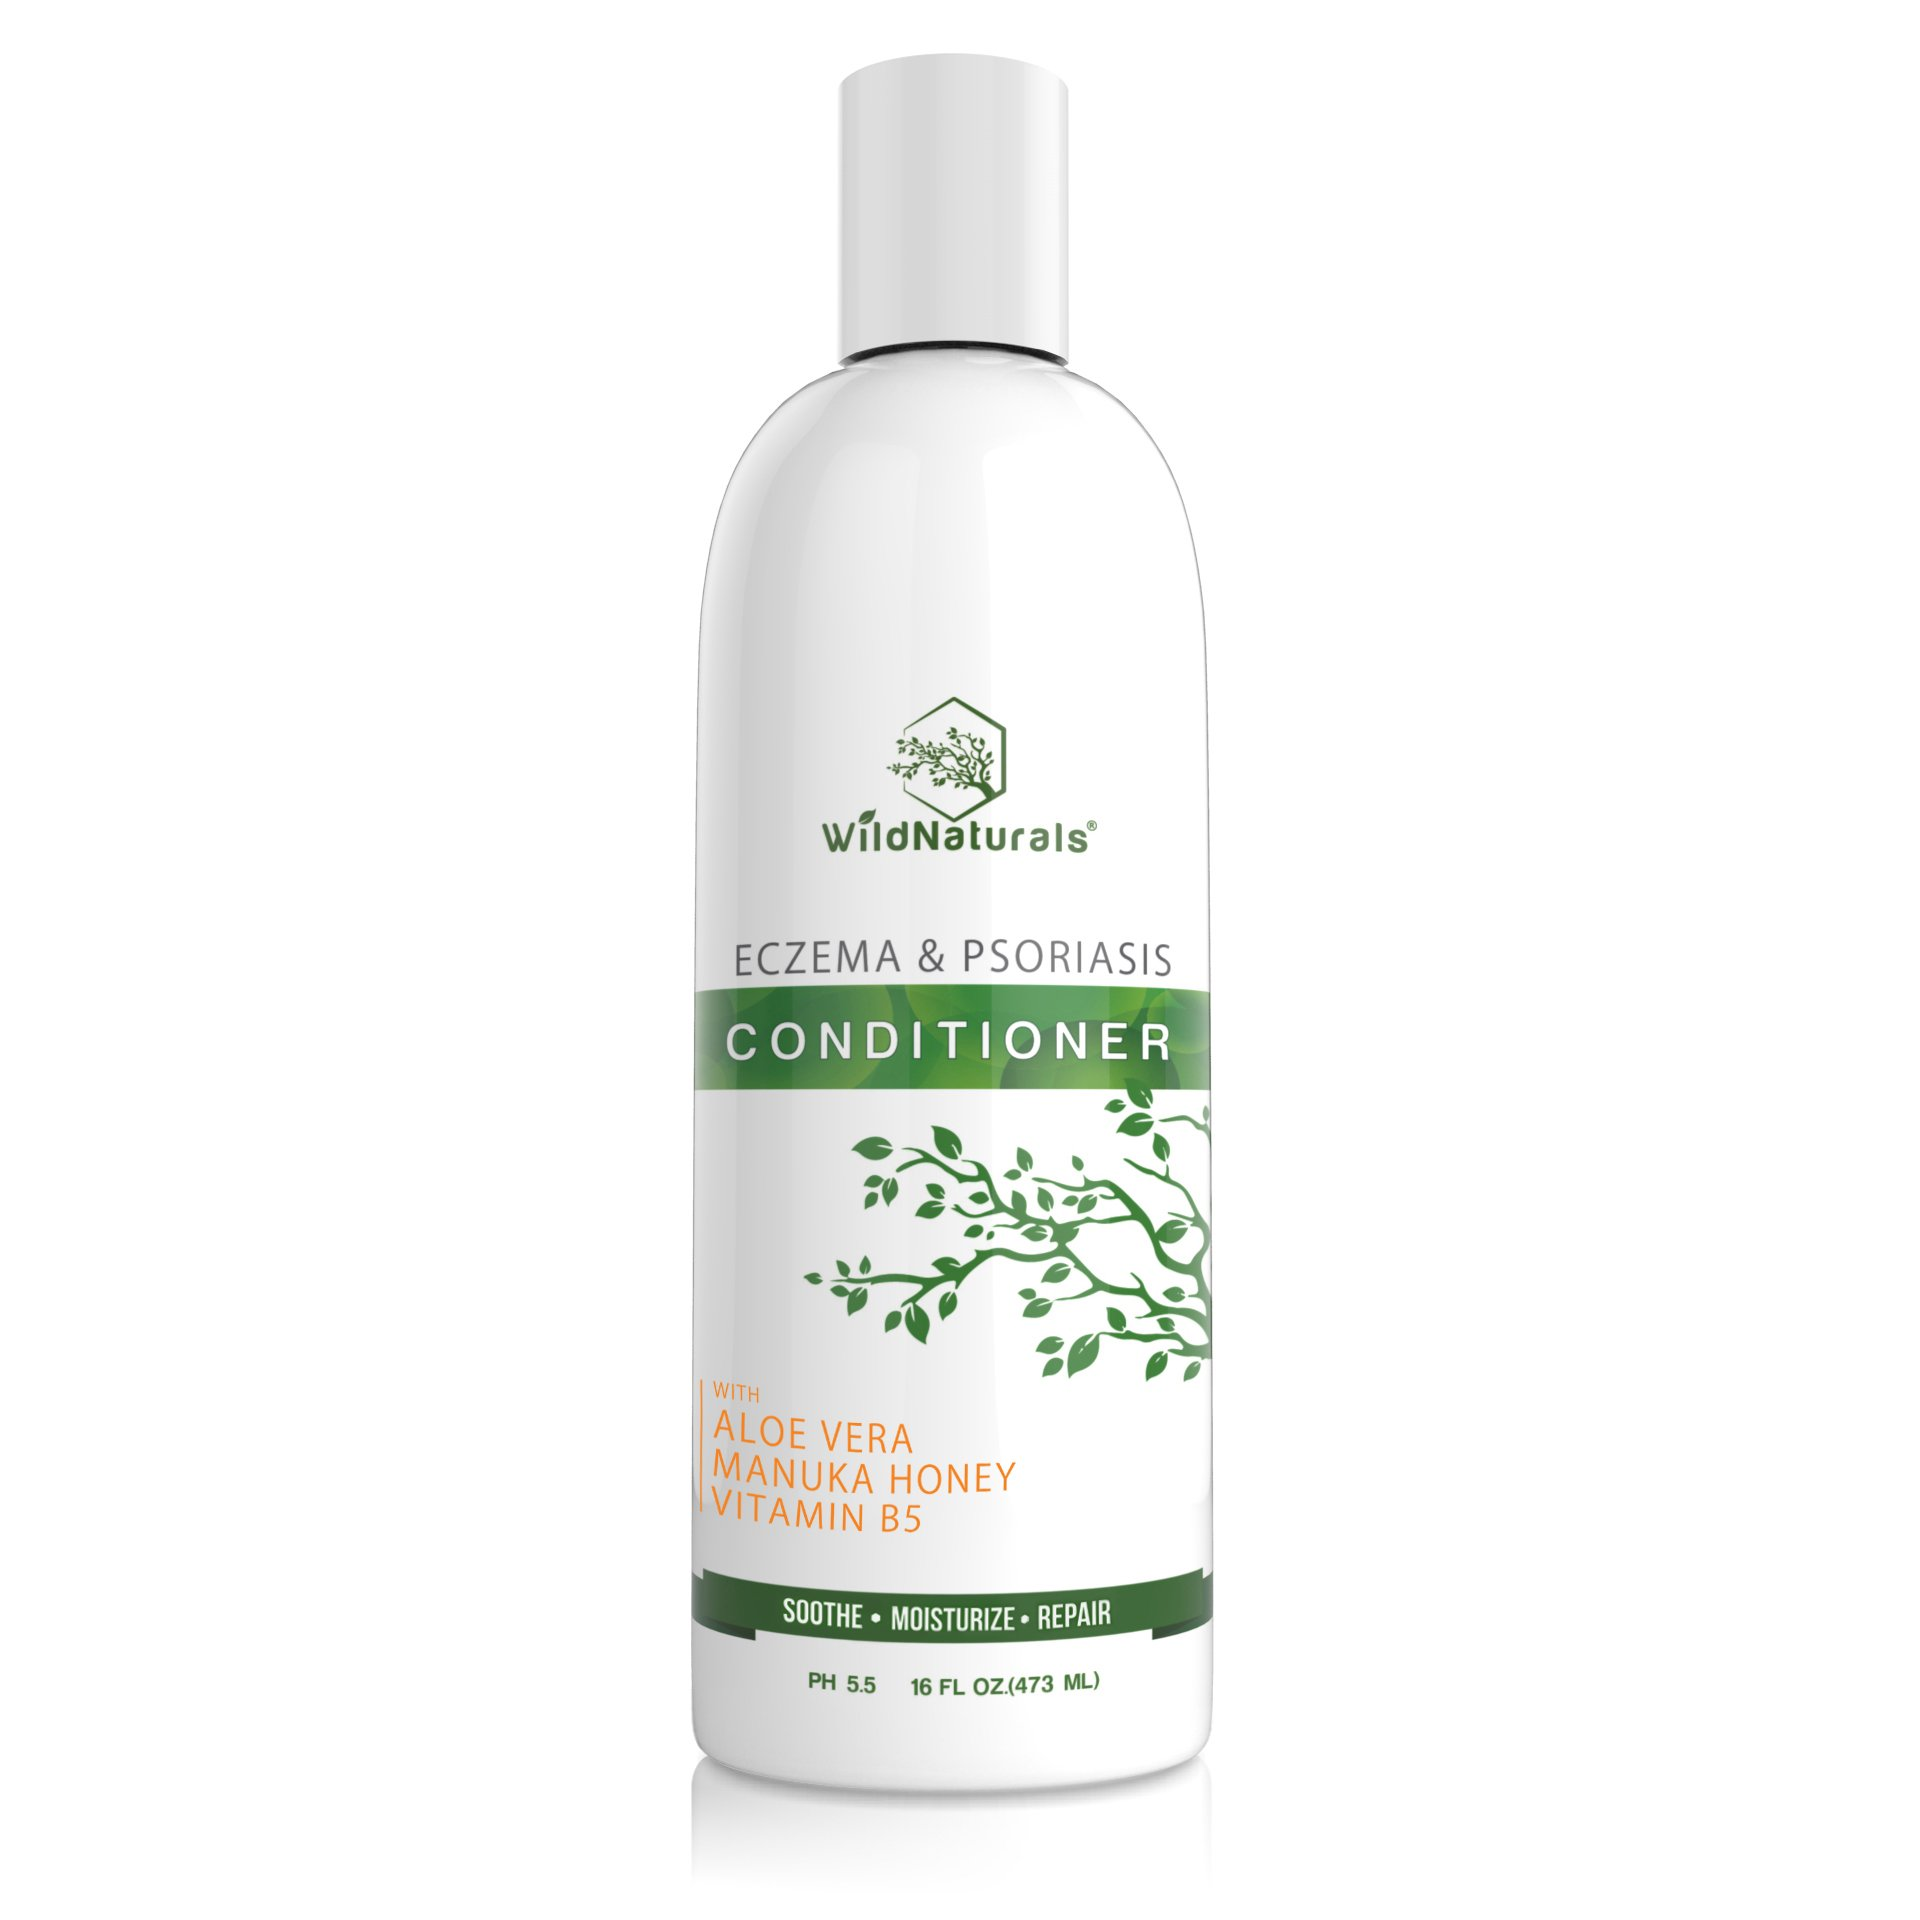 Wild Naturals Eczema Psoriasis Conditioner : 98% Natural, 80% Organic, Sulfate Free, Soothing, Healing, Anti Dandruff, Flaky, Itchy, Dry Scalp Treatment for Seborrheic Dermatitis, Moisturizing, 16oz by Wild Naturals